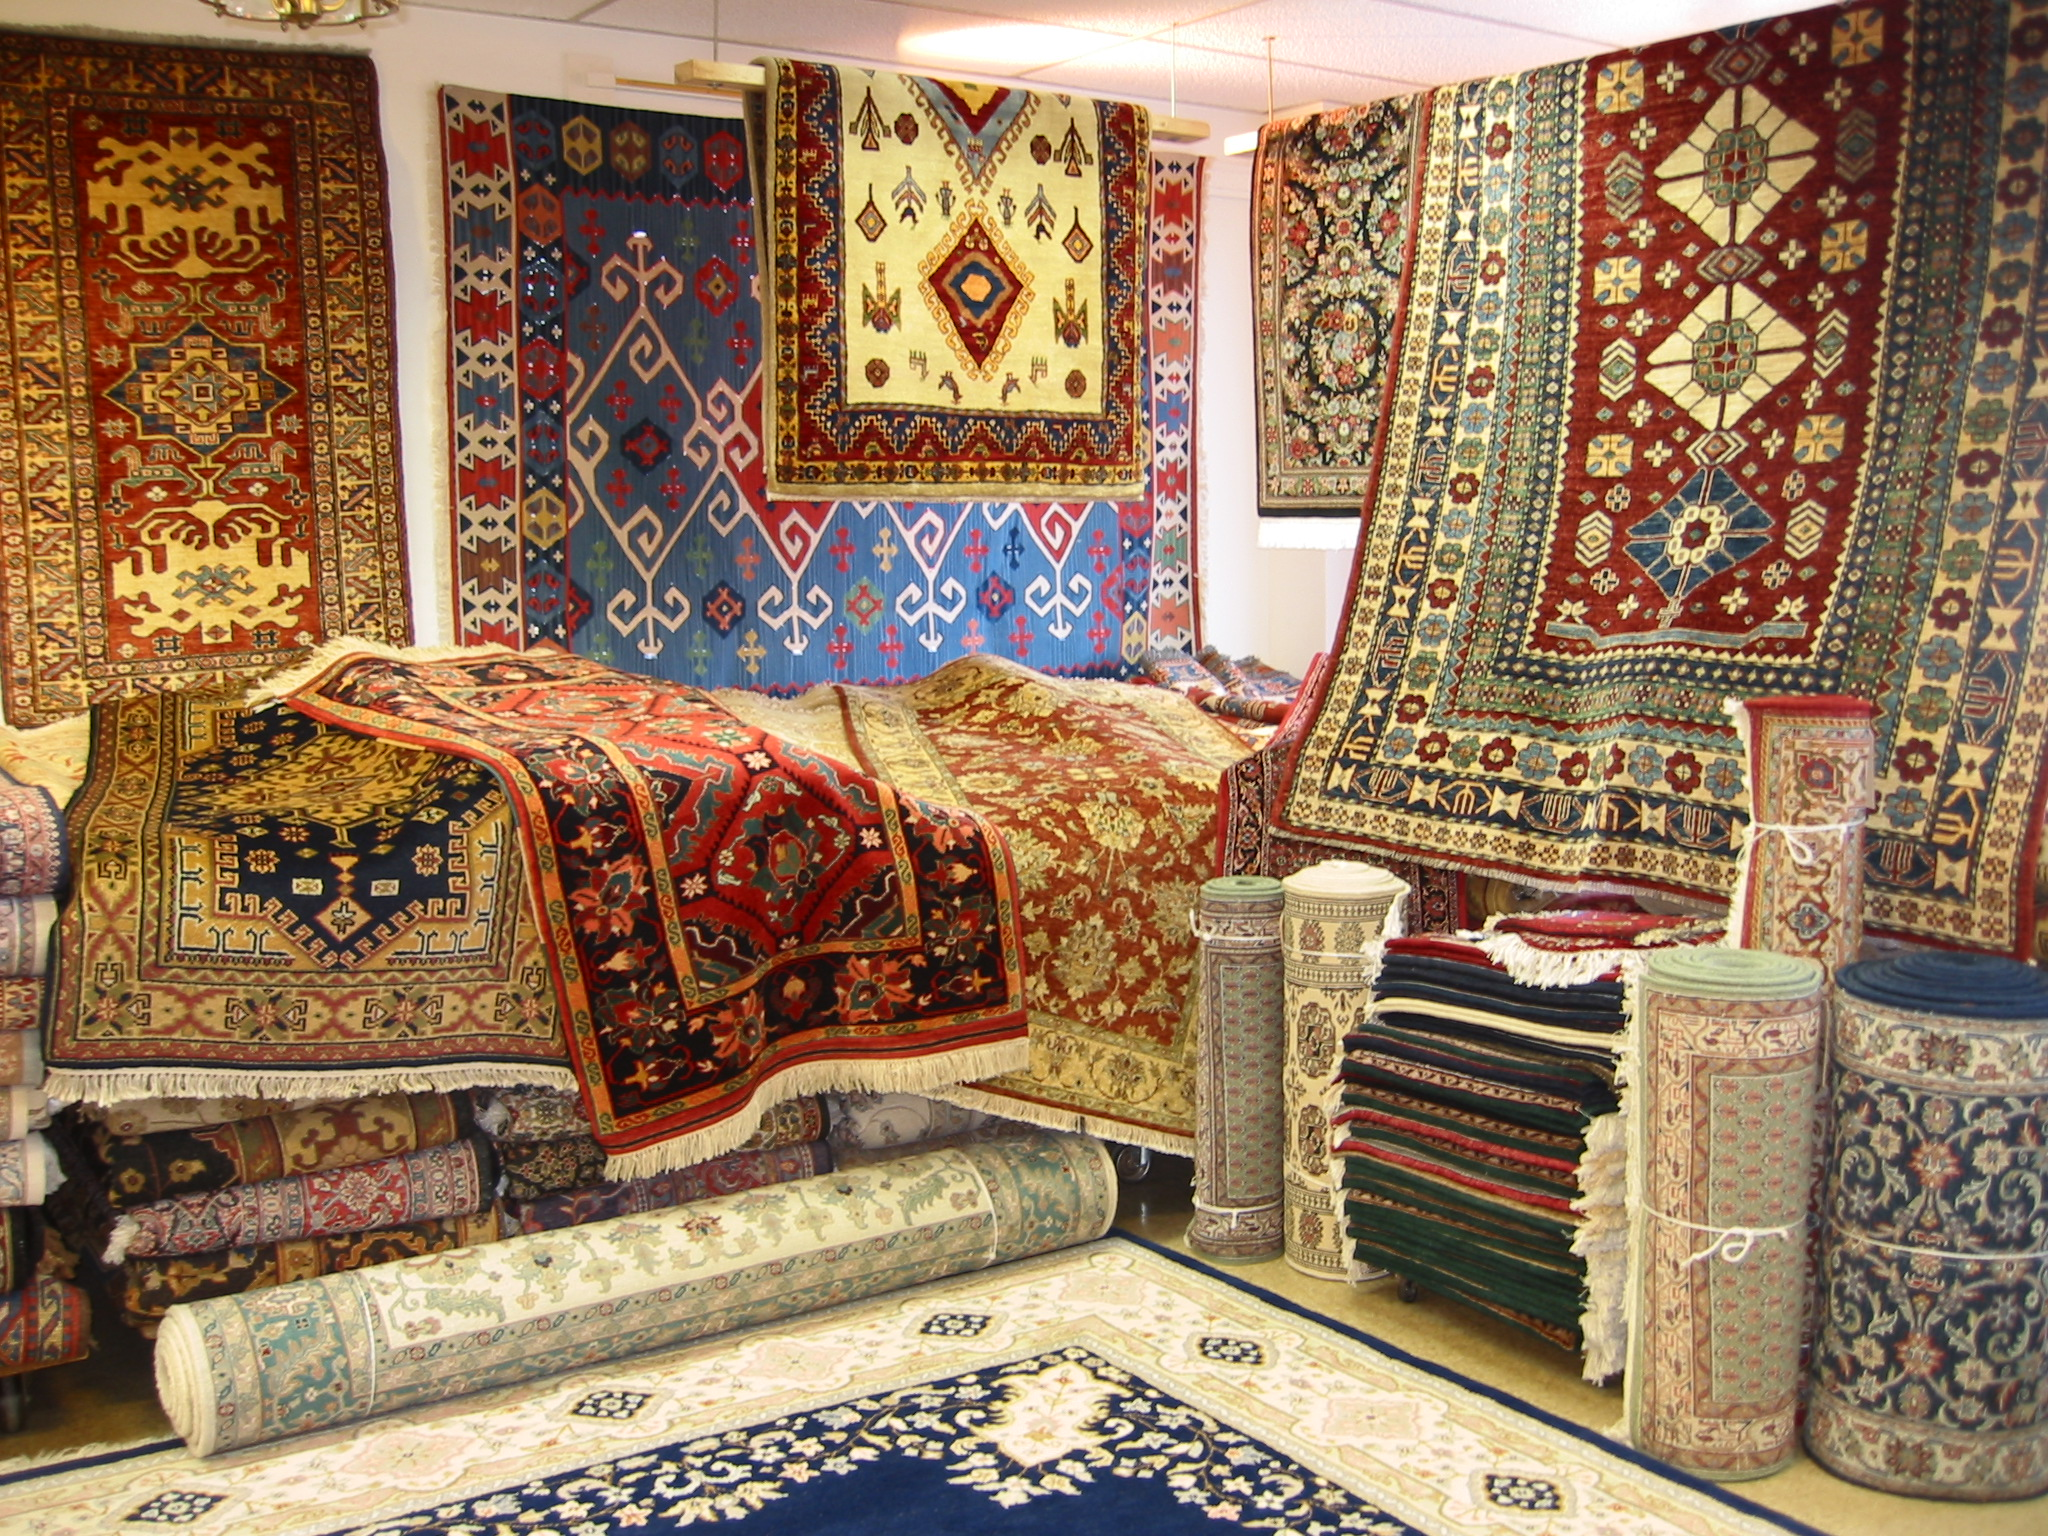 Oriental Weavers, founded in 1979, is considered a giant manufacturer of carpets, rugs and related raw material